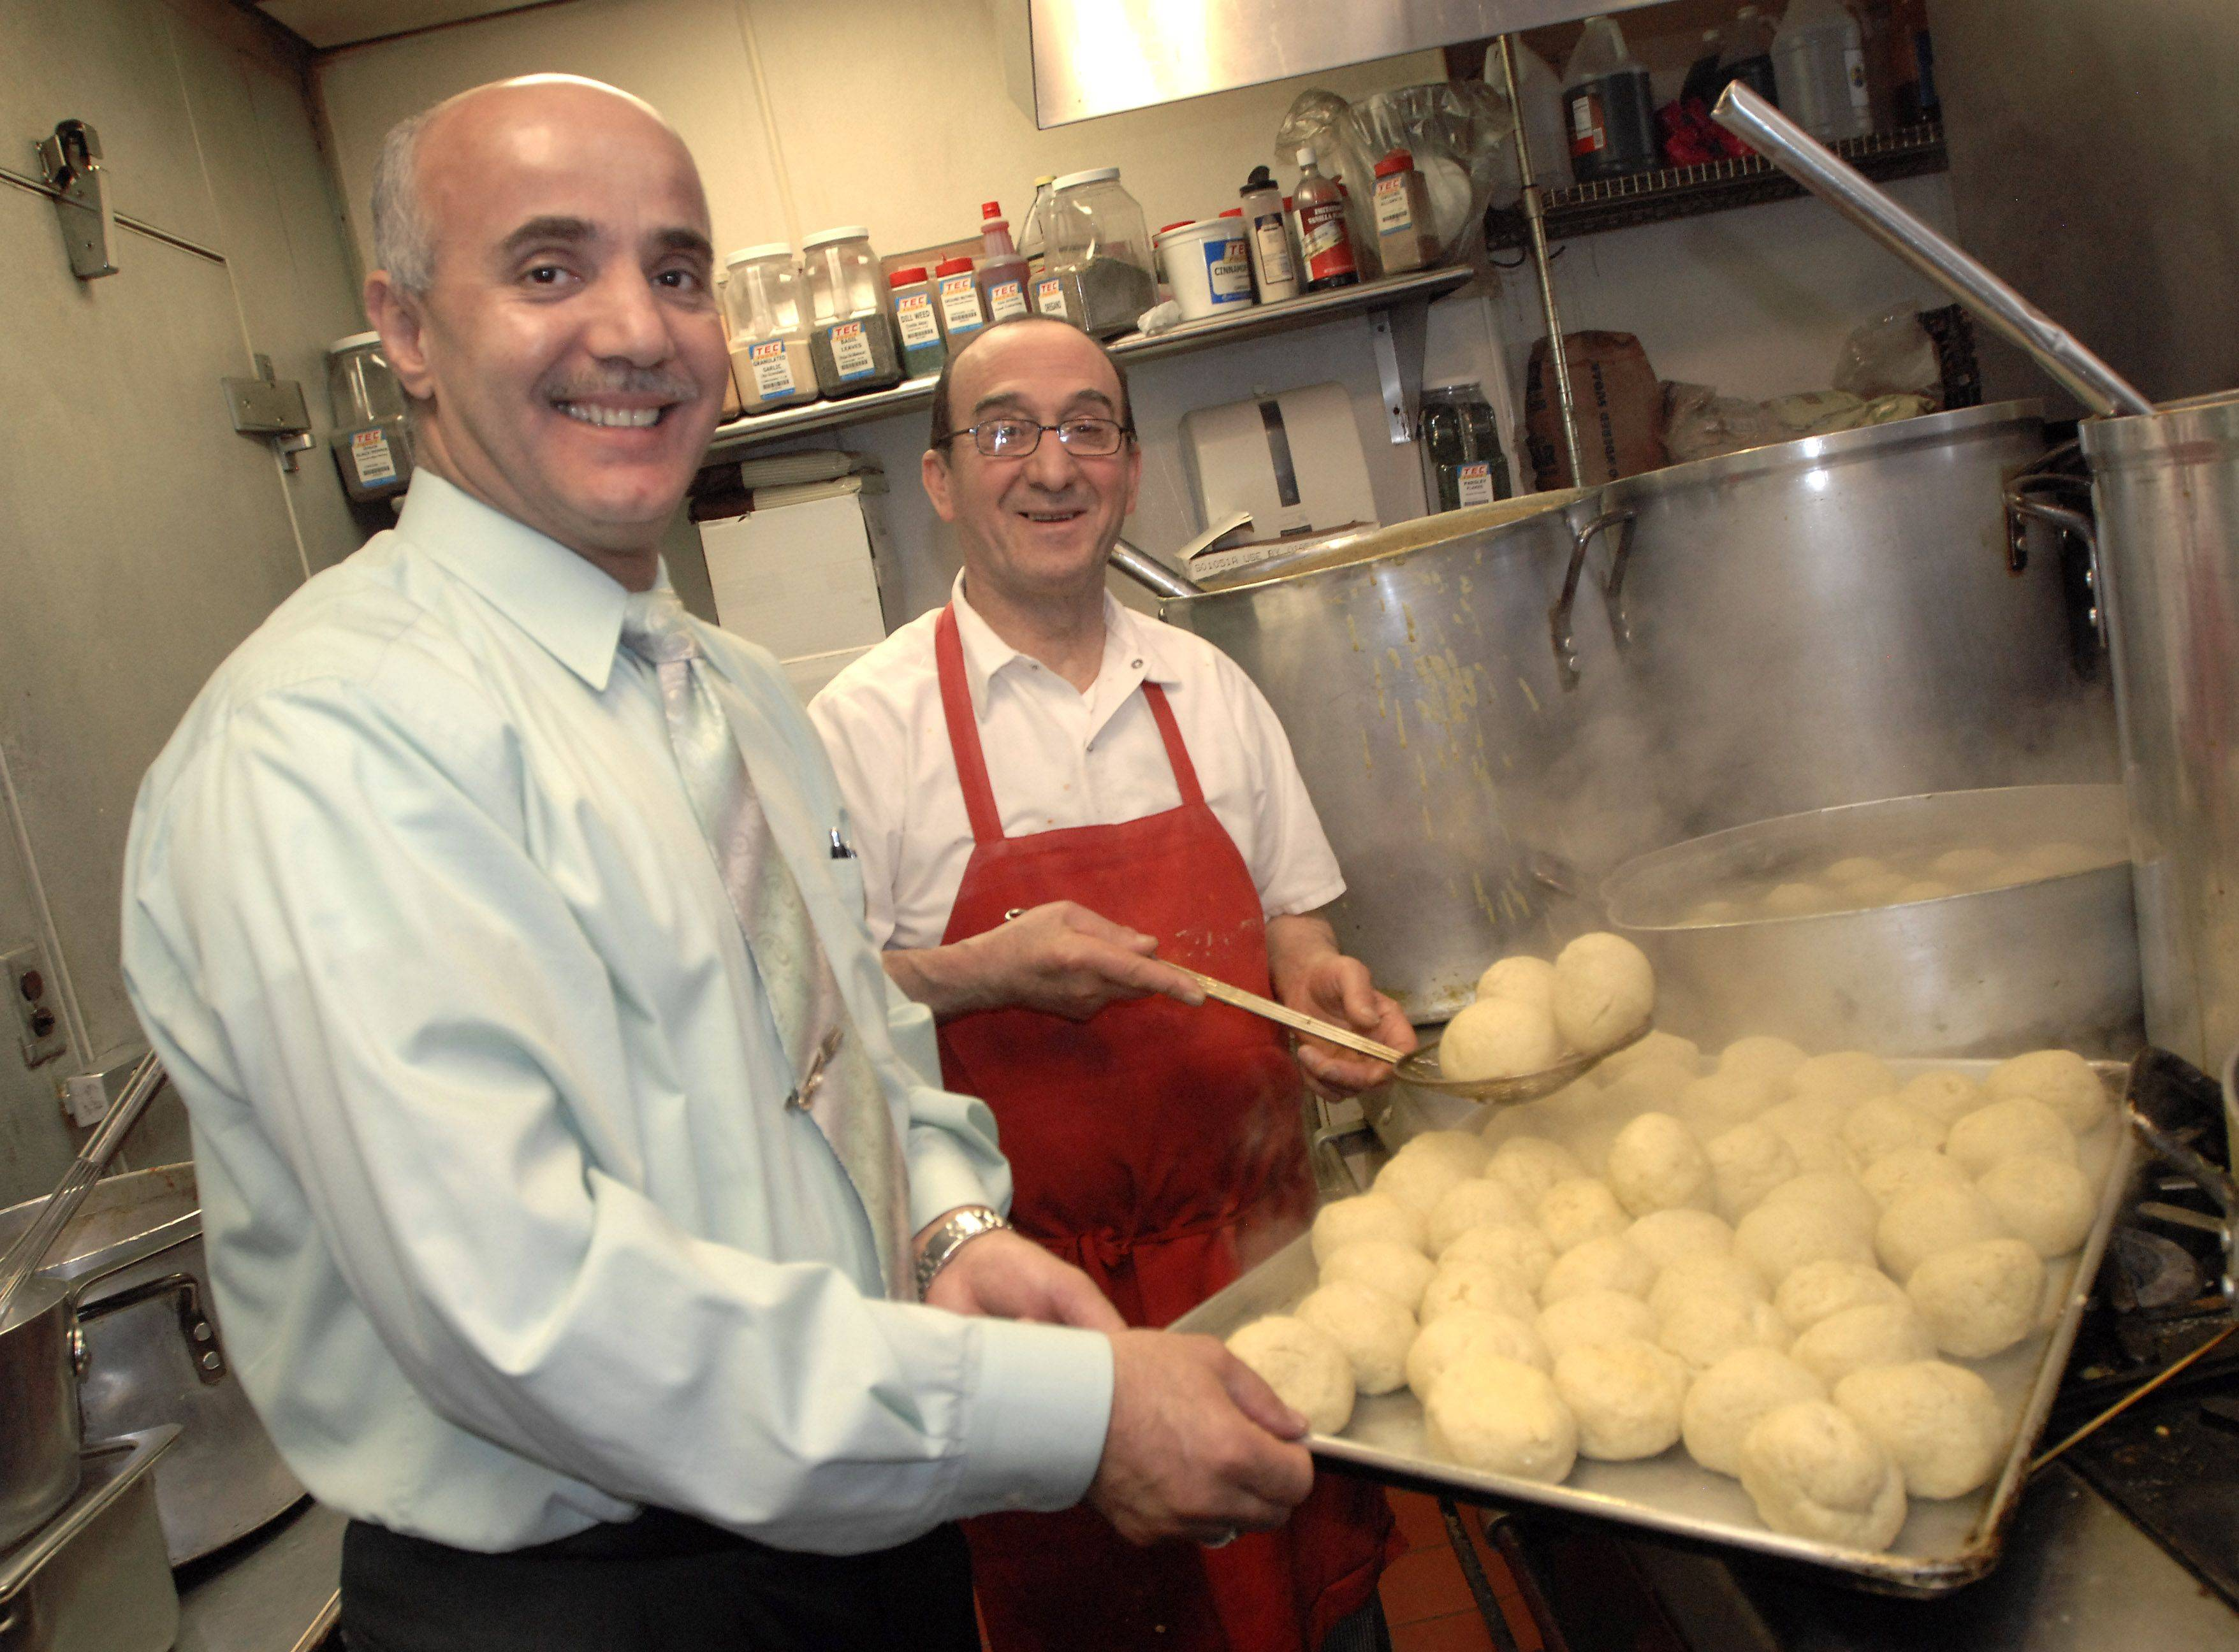 Pete Panayiotou, left, and his chef George Kokkines take fluffy matzo balls from their boiling water bath at The Continental Restaurant in Buffalo Grove. Started 15 years ago as a favor to a loyal customer, Panayiotou, a Greek Orthodox Christian, and his restaurant annually serve traditional Jewish Passover meals to sold-out crowds.